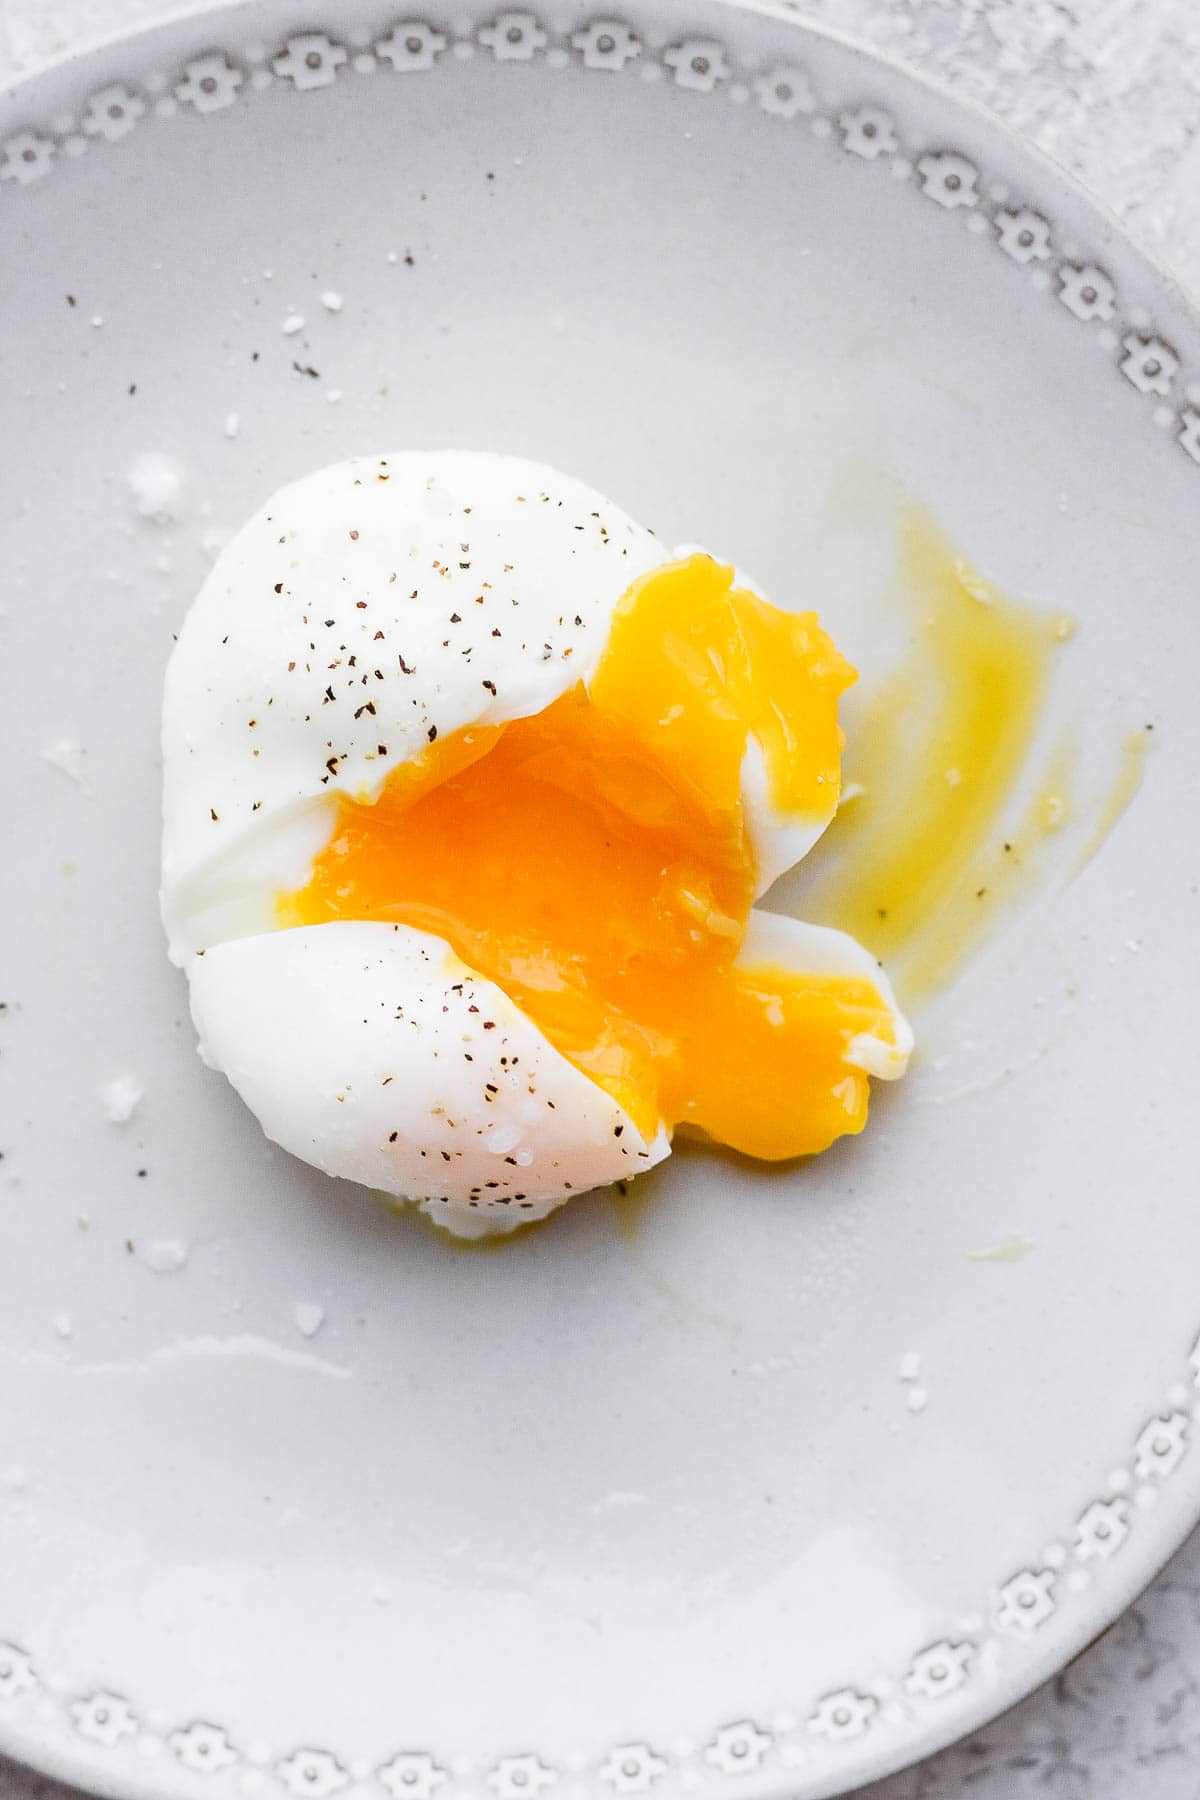 A poached egg on a plate, cut open with the yolk coming out.